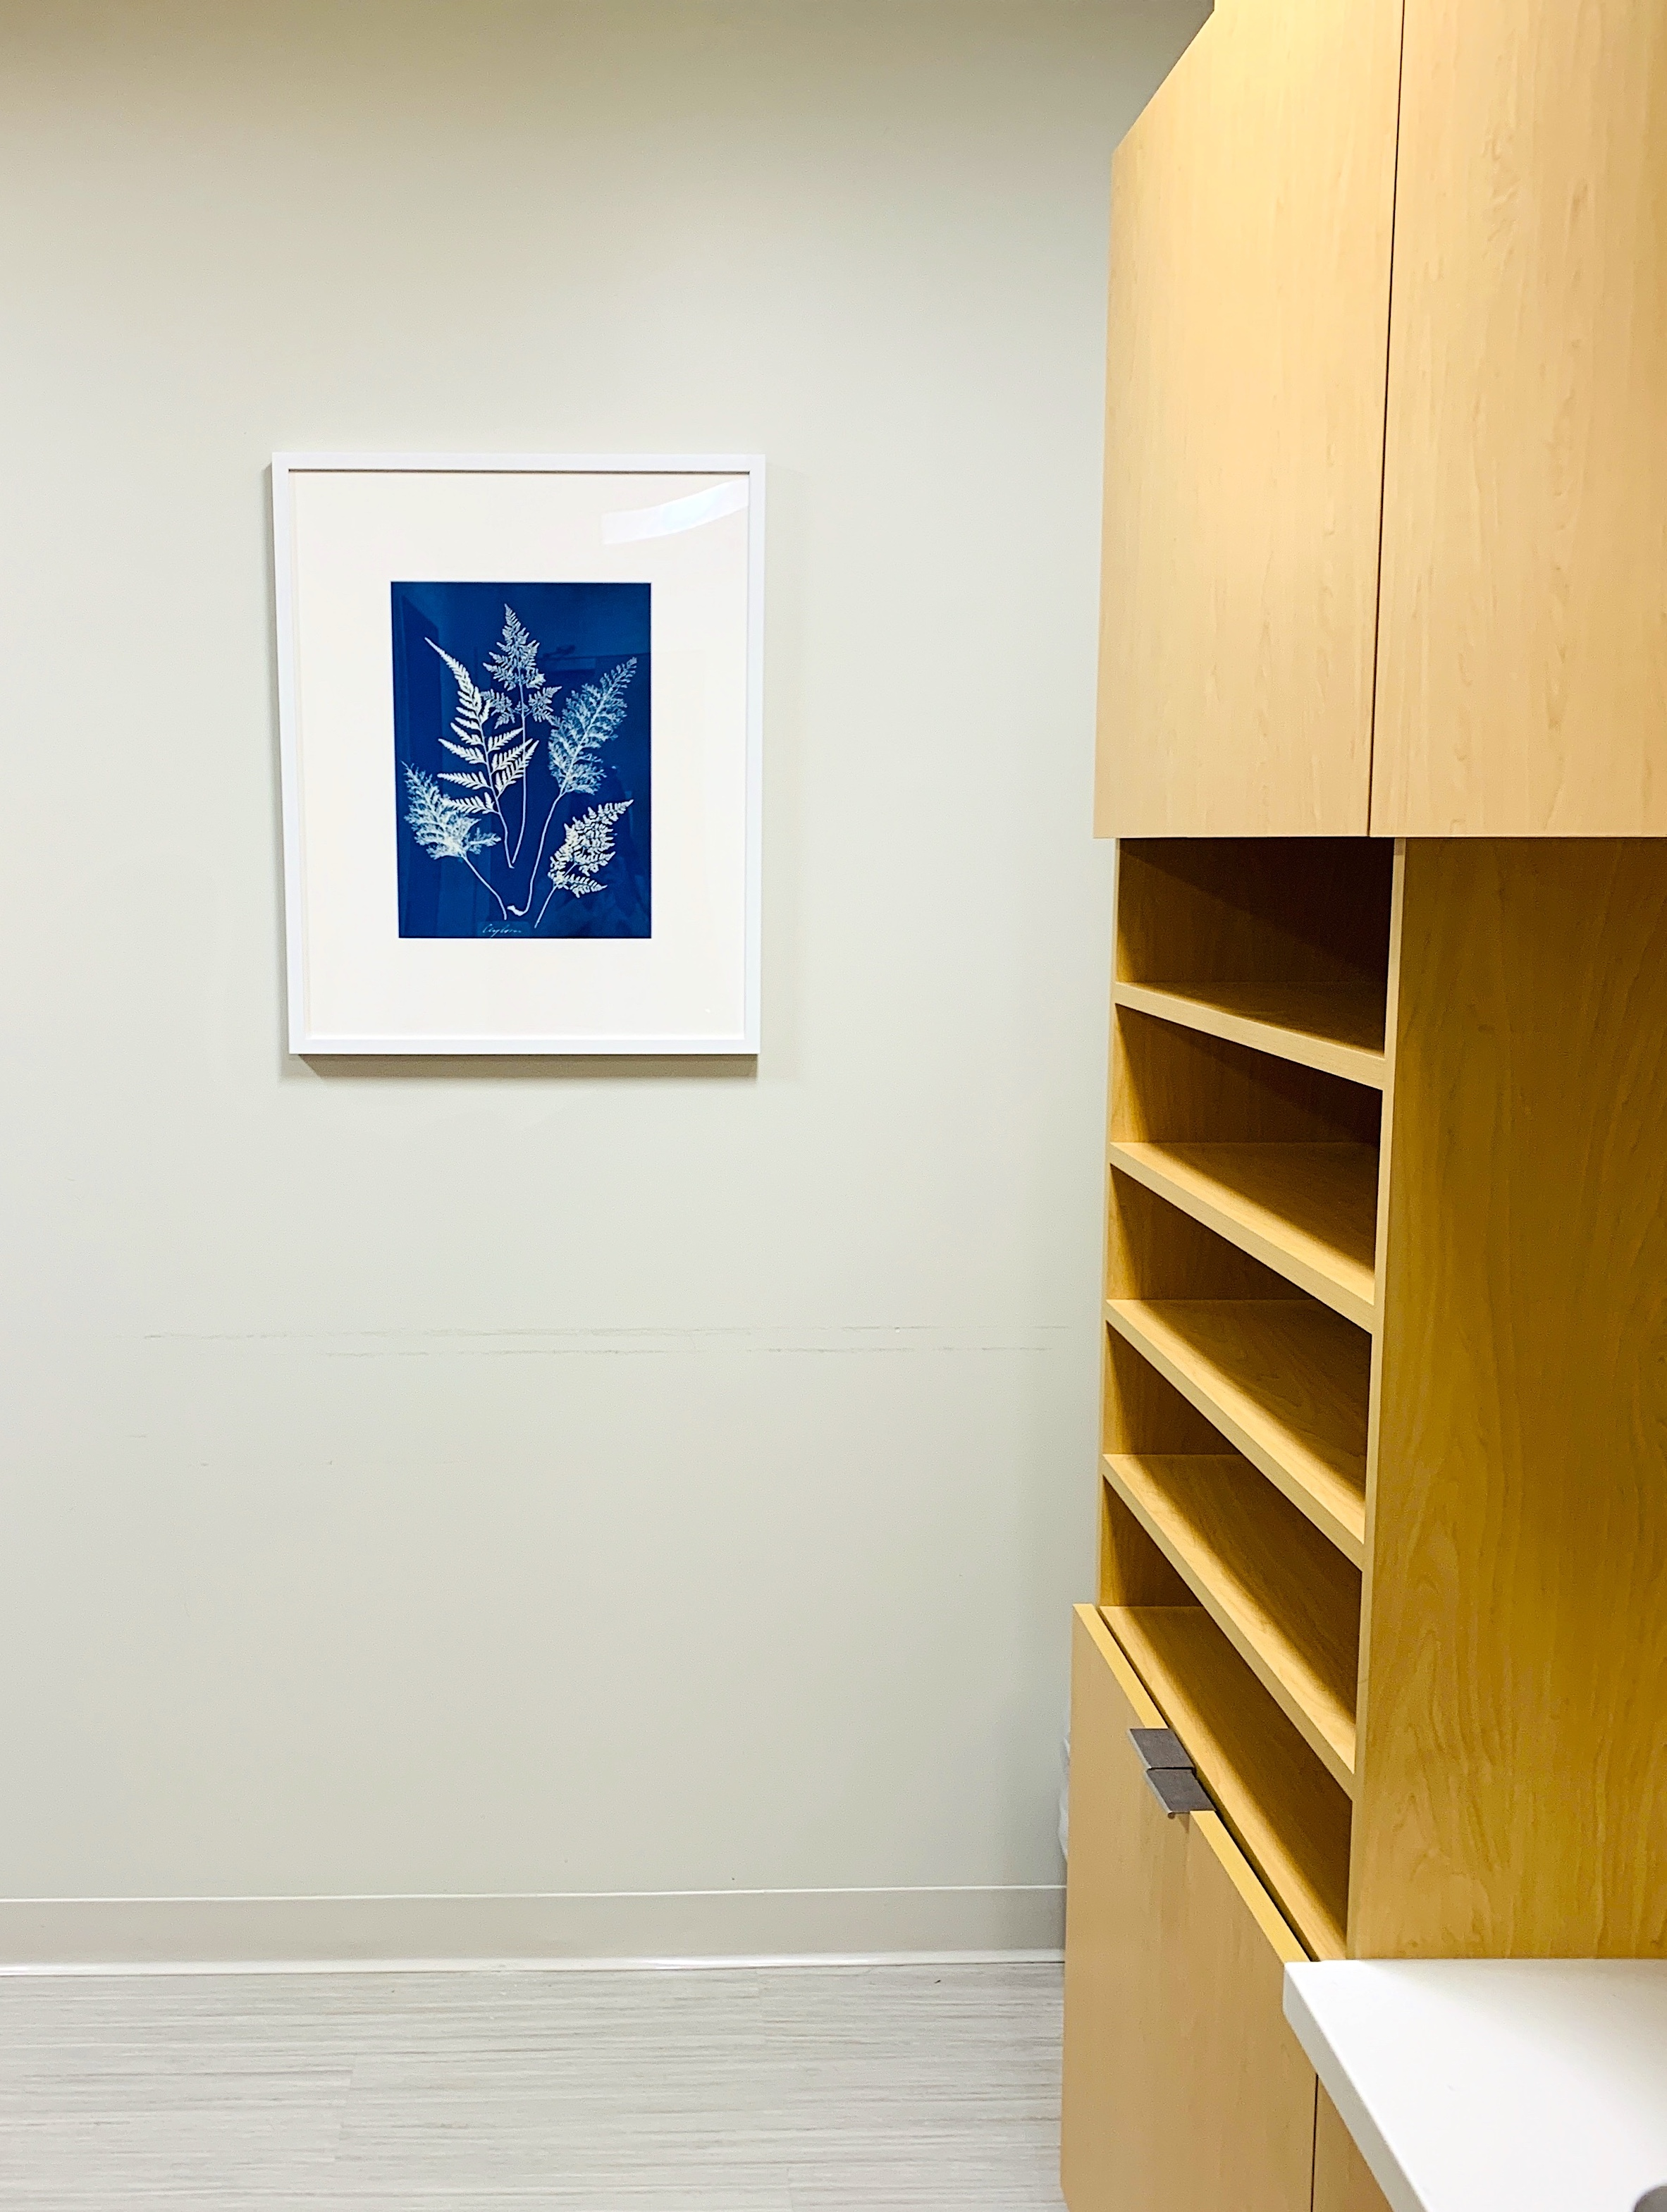 Installation View: Artwork by Anna Atkins